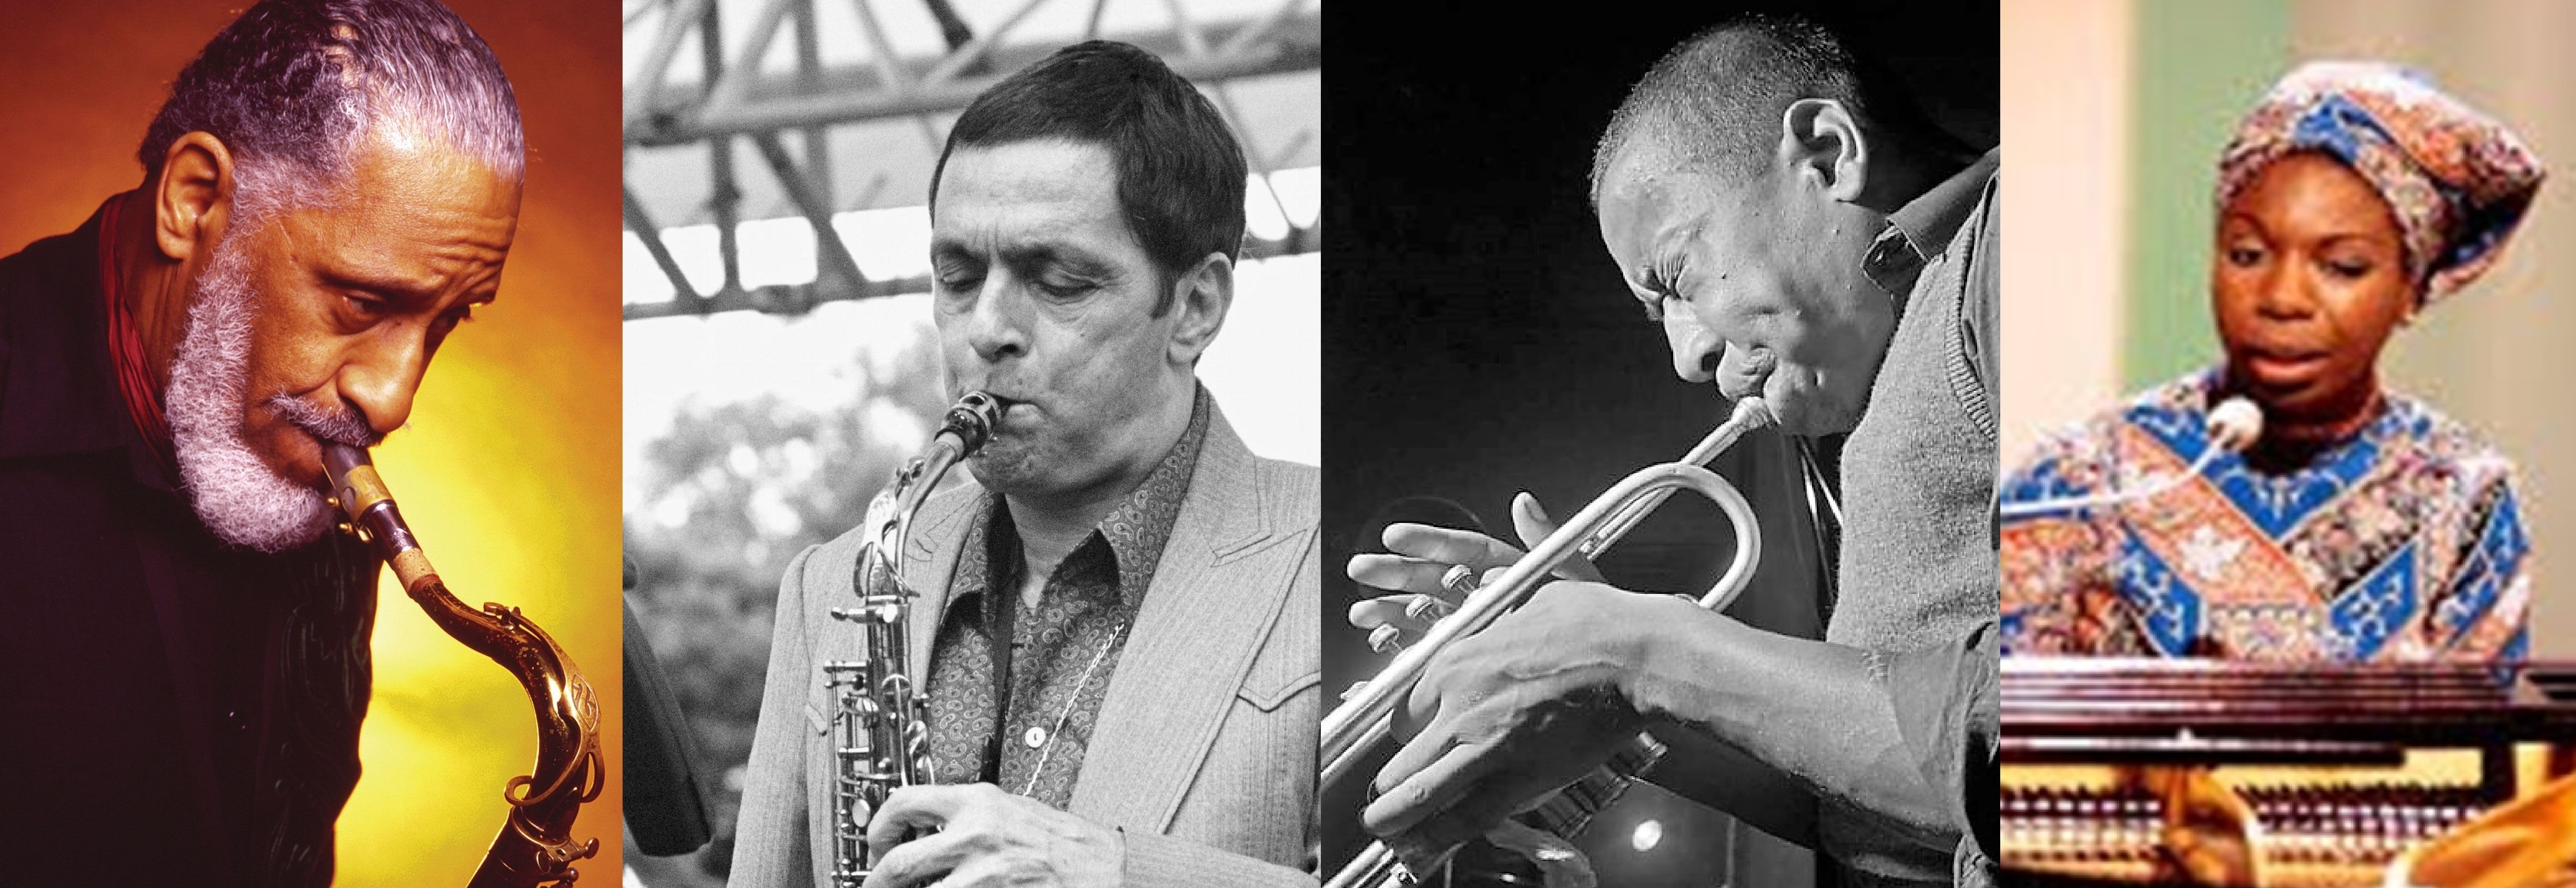 Sonny Rollins, Art Pepper, Lee Morgan y Nina Simone, protagonisstas de interesantes documentales